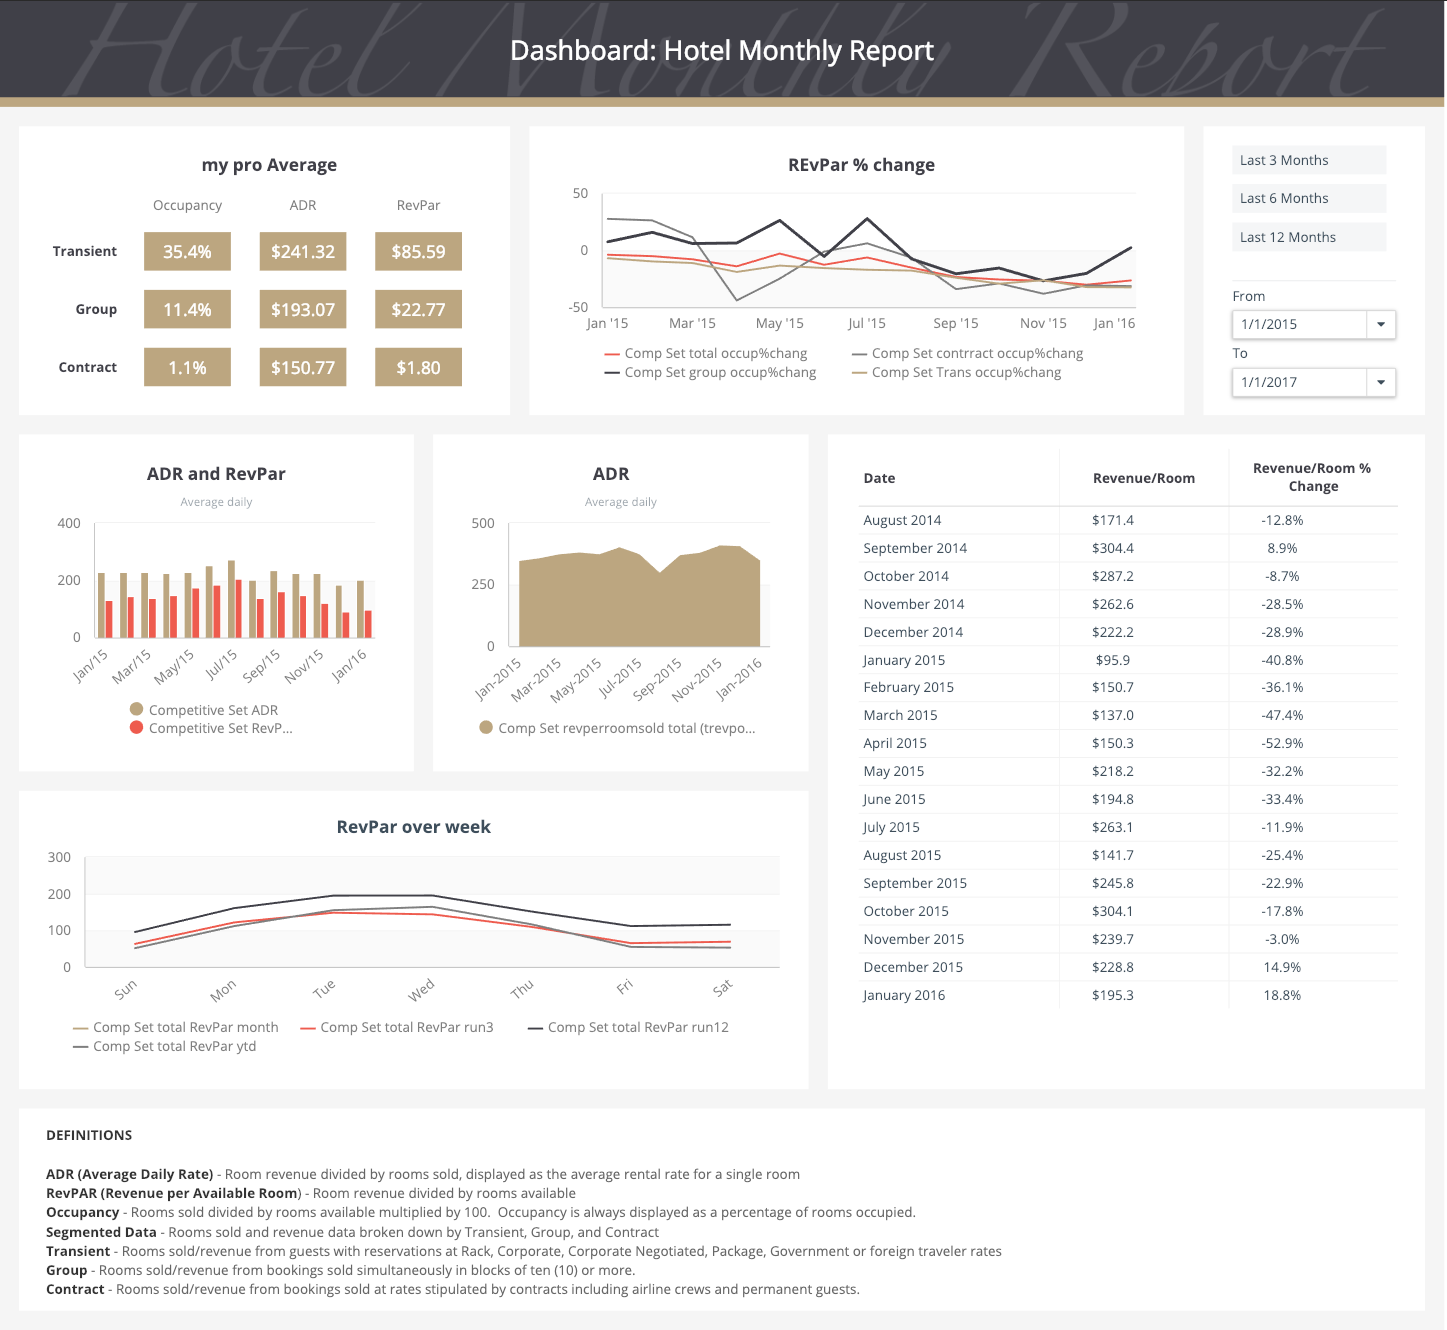 Track your hotel revenue in this dashboard template in real-time